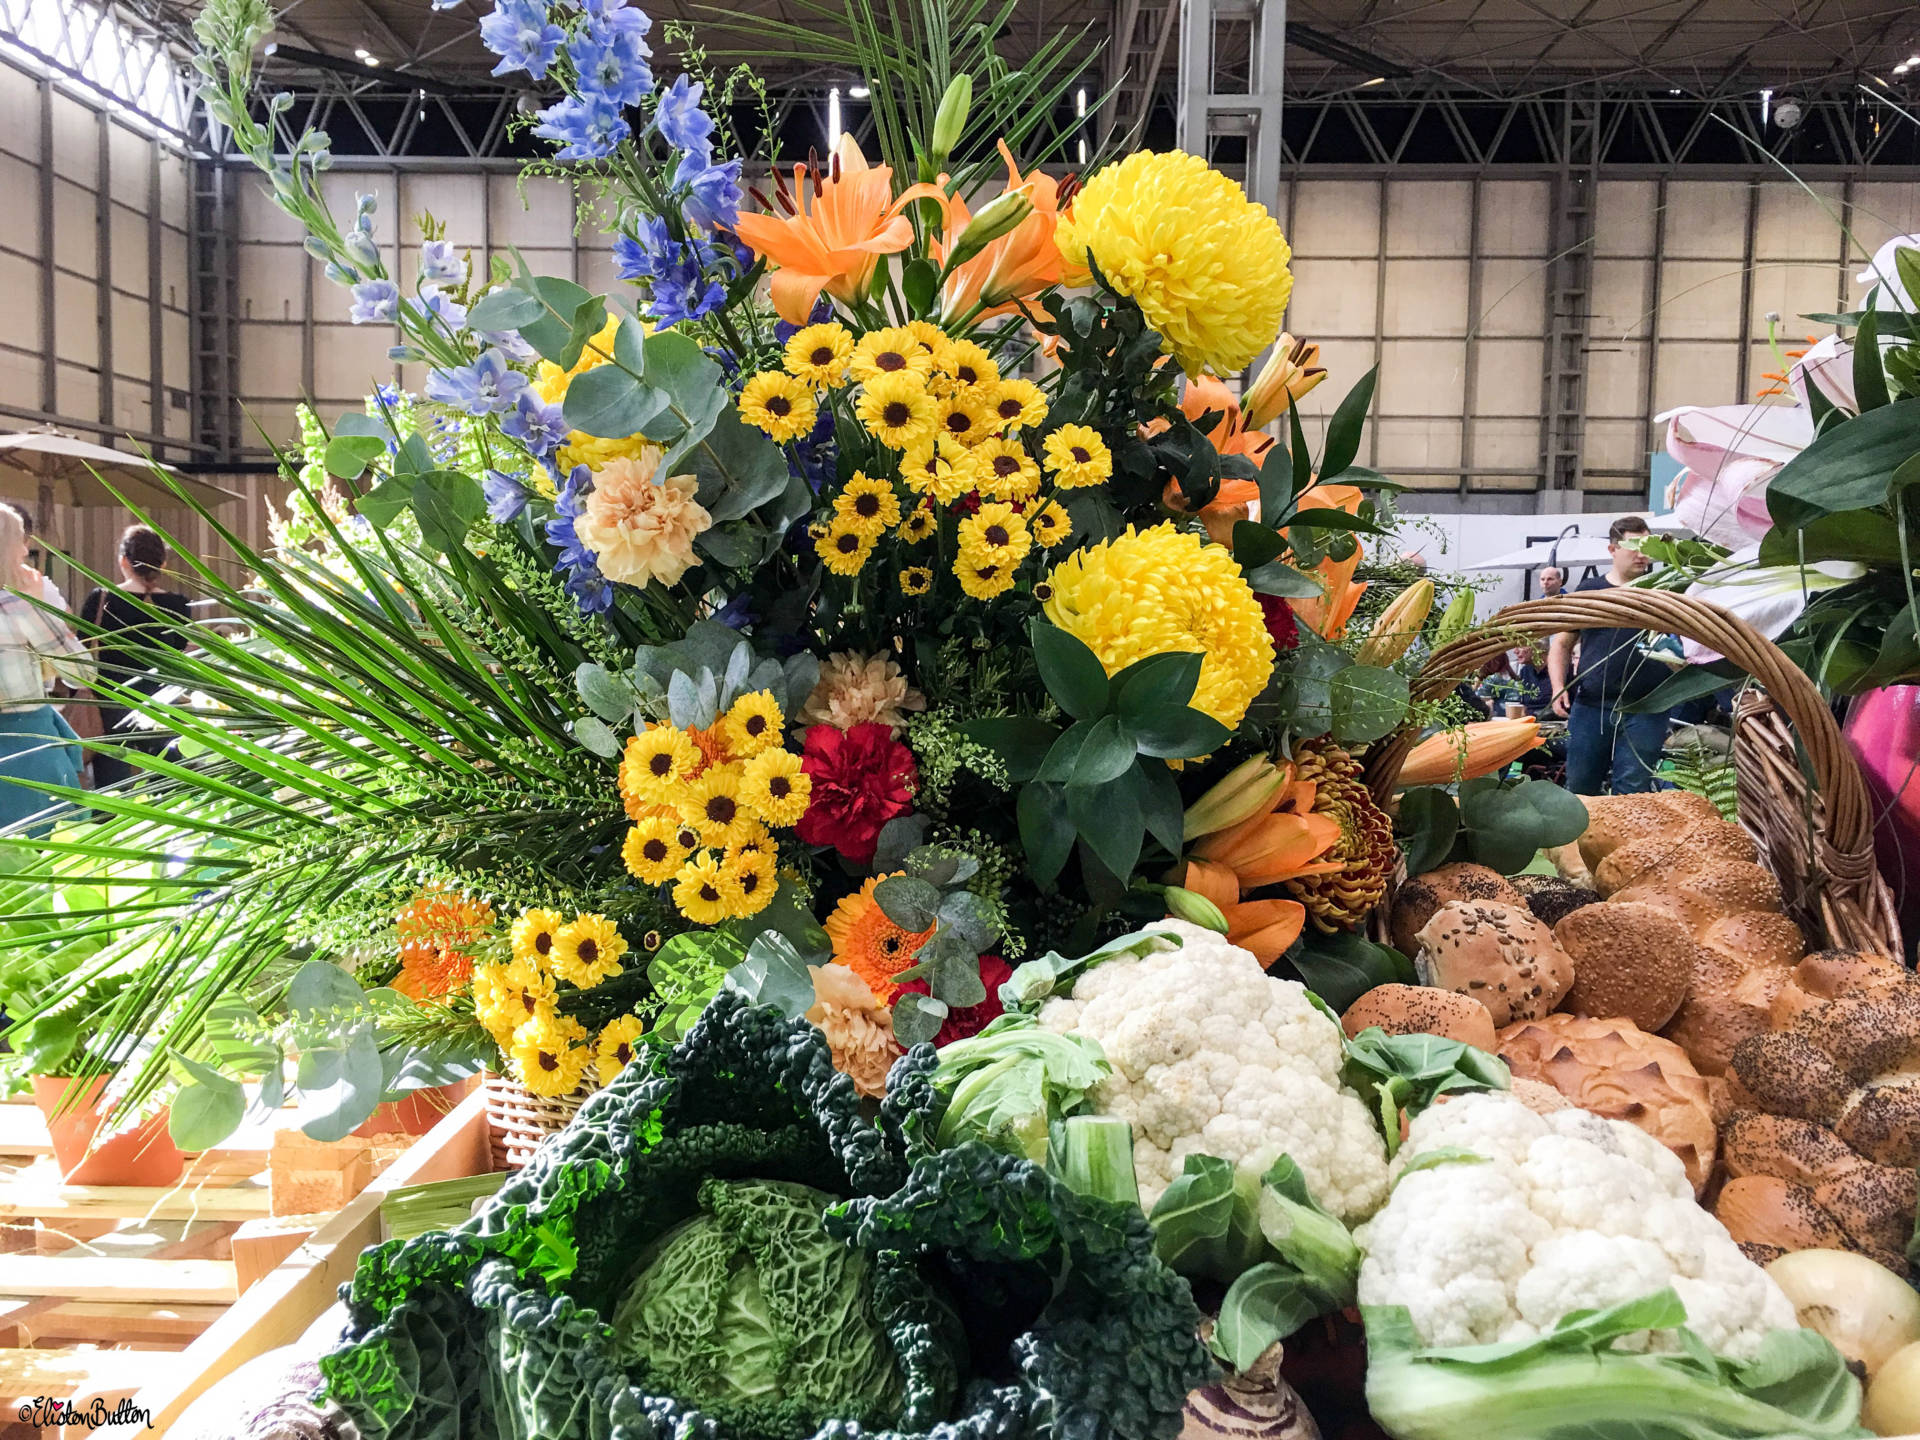 Farm Shop Harvest from Becketts Farm at Grand Designs Live 2017 with Eliston Button - Grand Designs Live 2017 – Part Two at www.elistonbutton.com - Eliston Button - That Crafty Kid – Art, Design, Craft & Adventure.